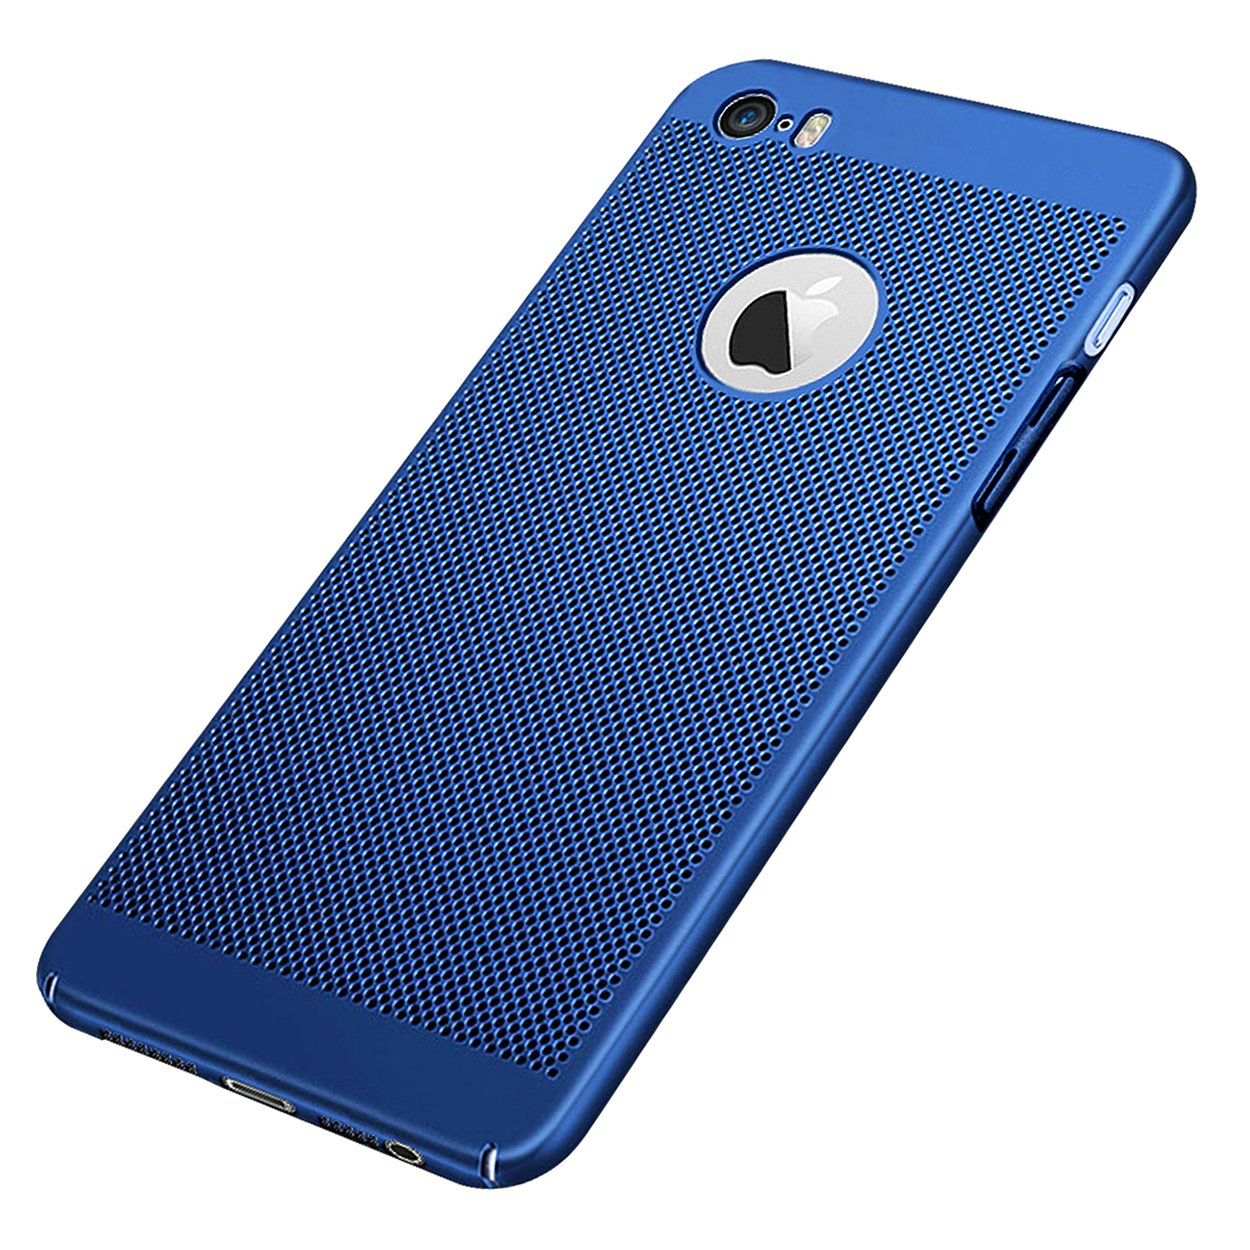 competitive price b9b77 c3ca5 Amazon.com: GerTong iPhone 5 5S SE Breathing Case, GerTong PC Mesh ...